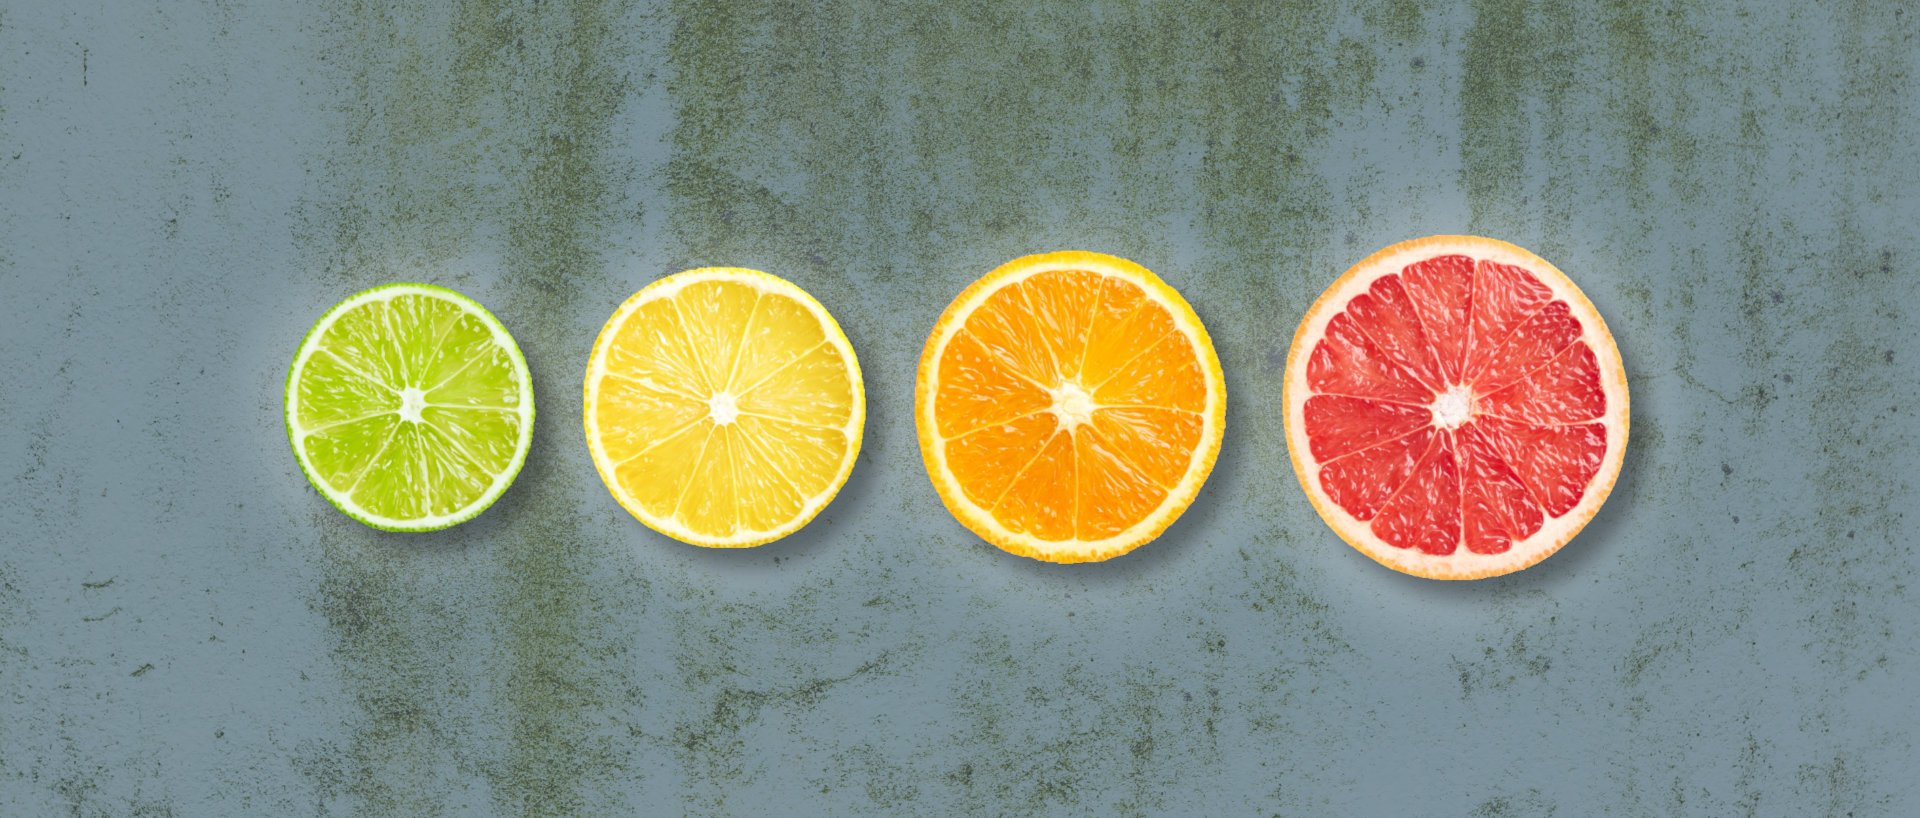 Organic citrus fruits for lemonade on a row